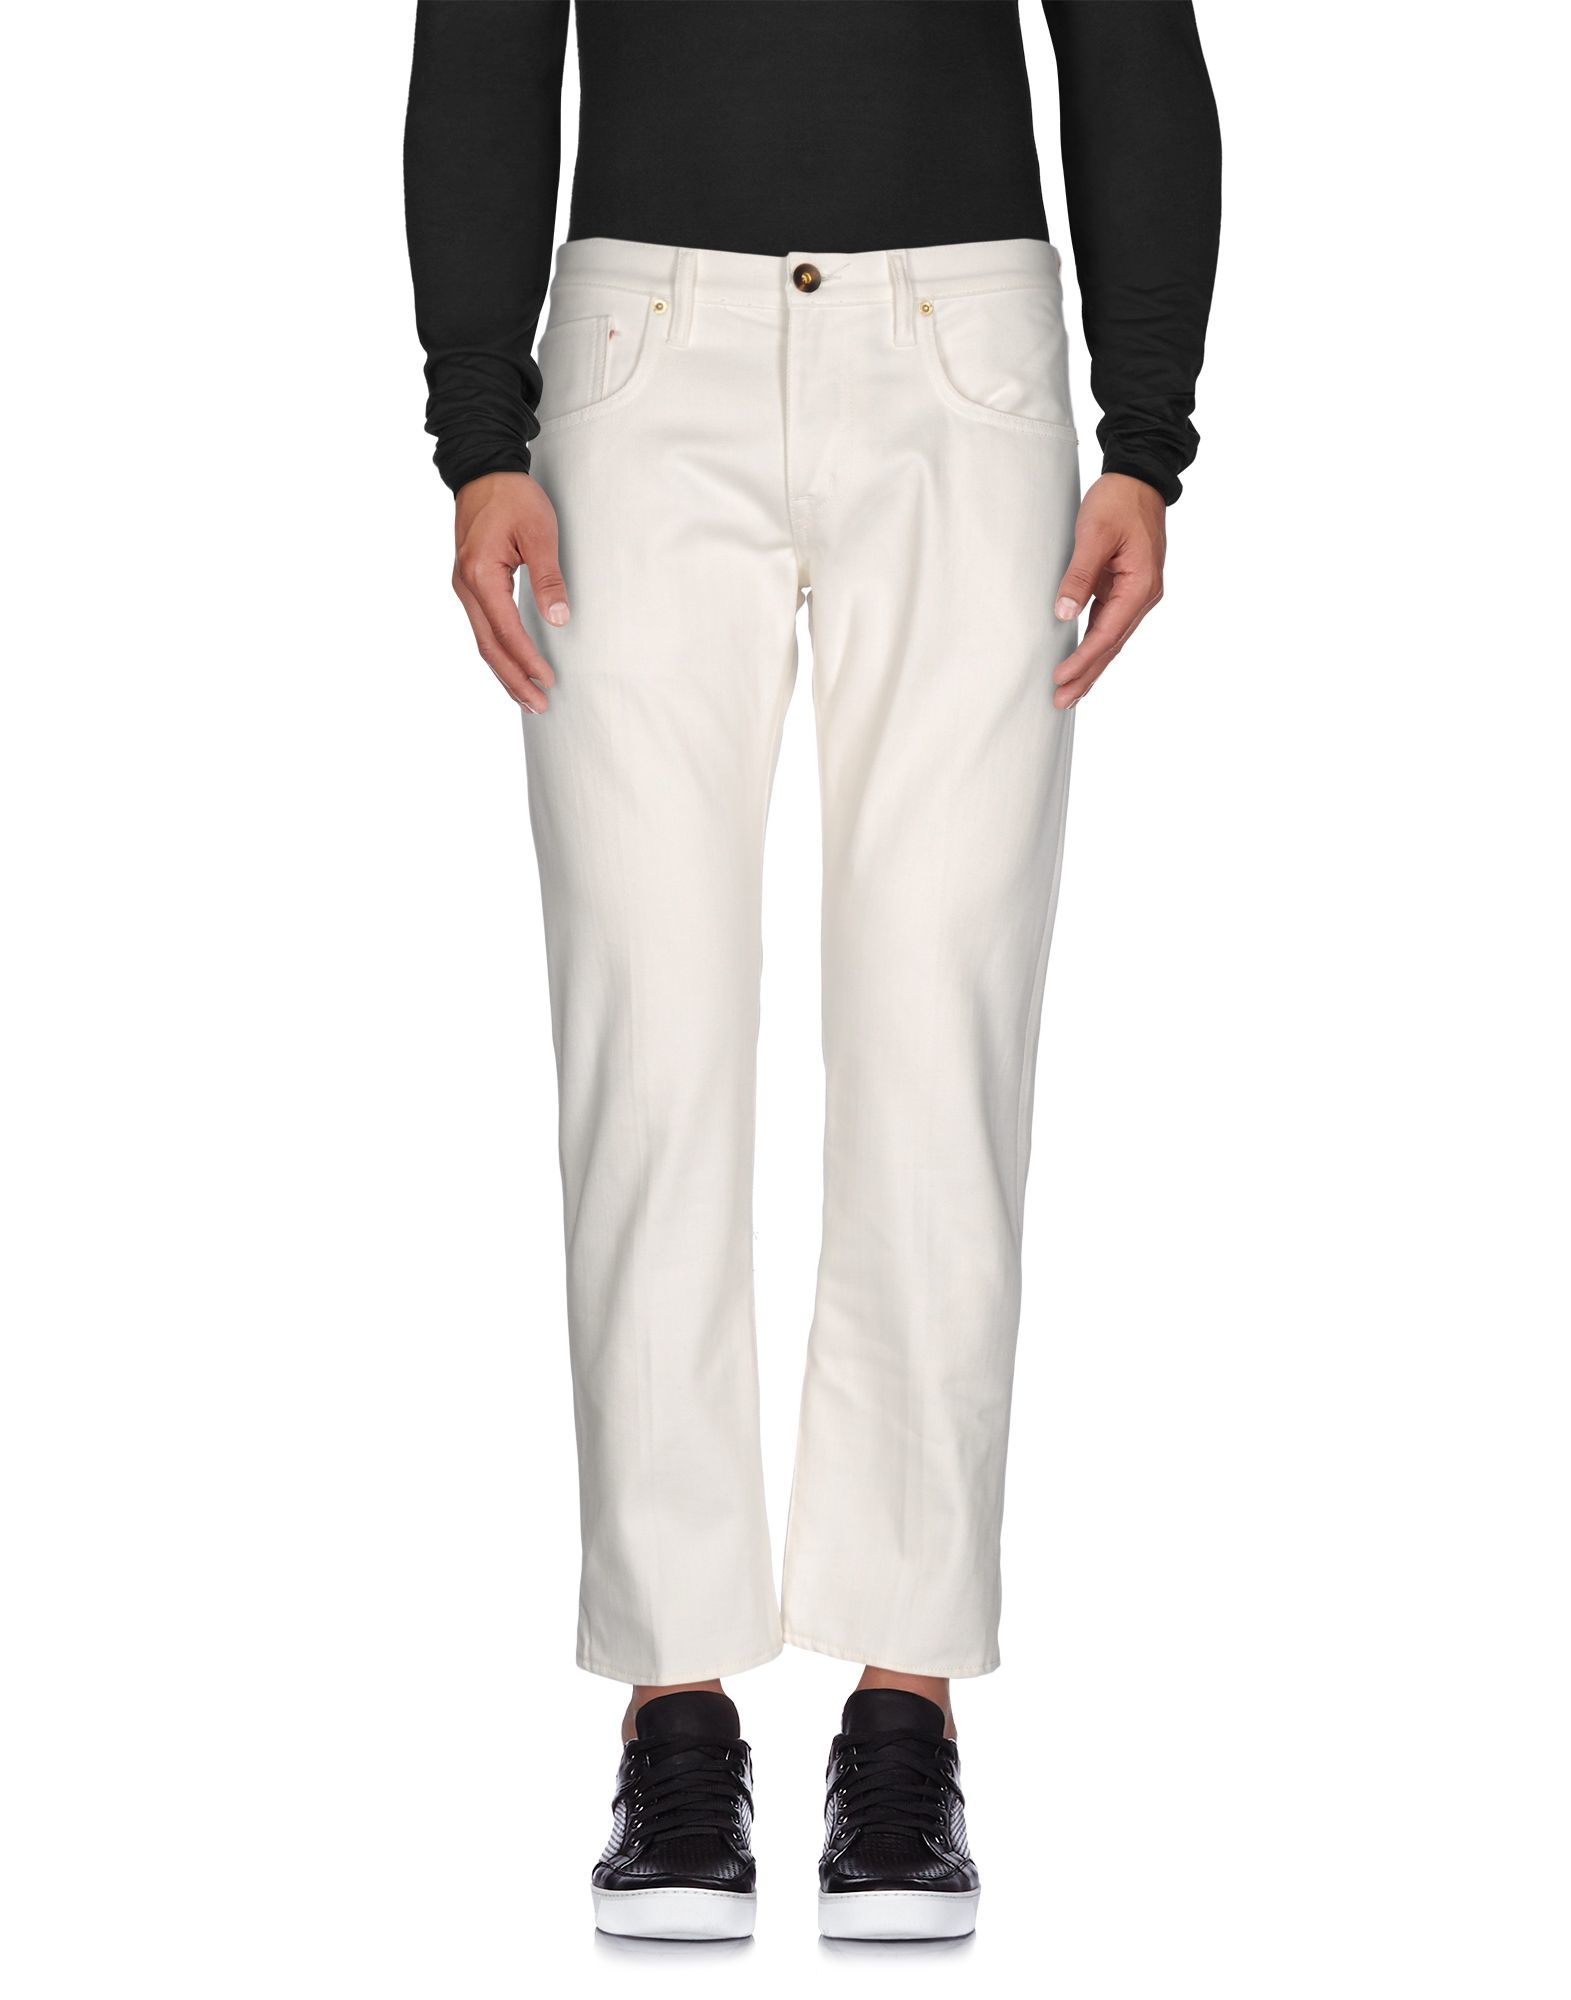 Statement jackets and the latest sneakers are always going to be top of men's lust lists, but don't let high-wattage clobber blind you to the essentials. The right pair of trousers can be the.